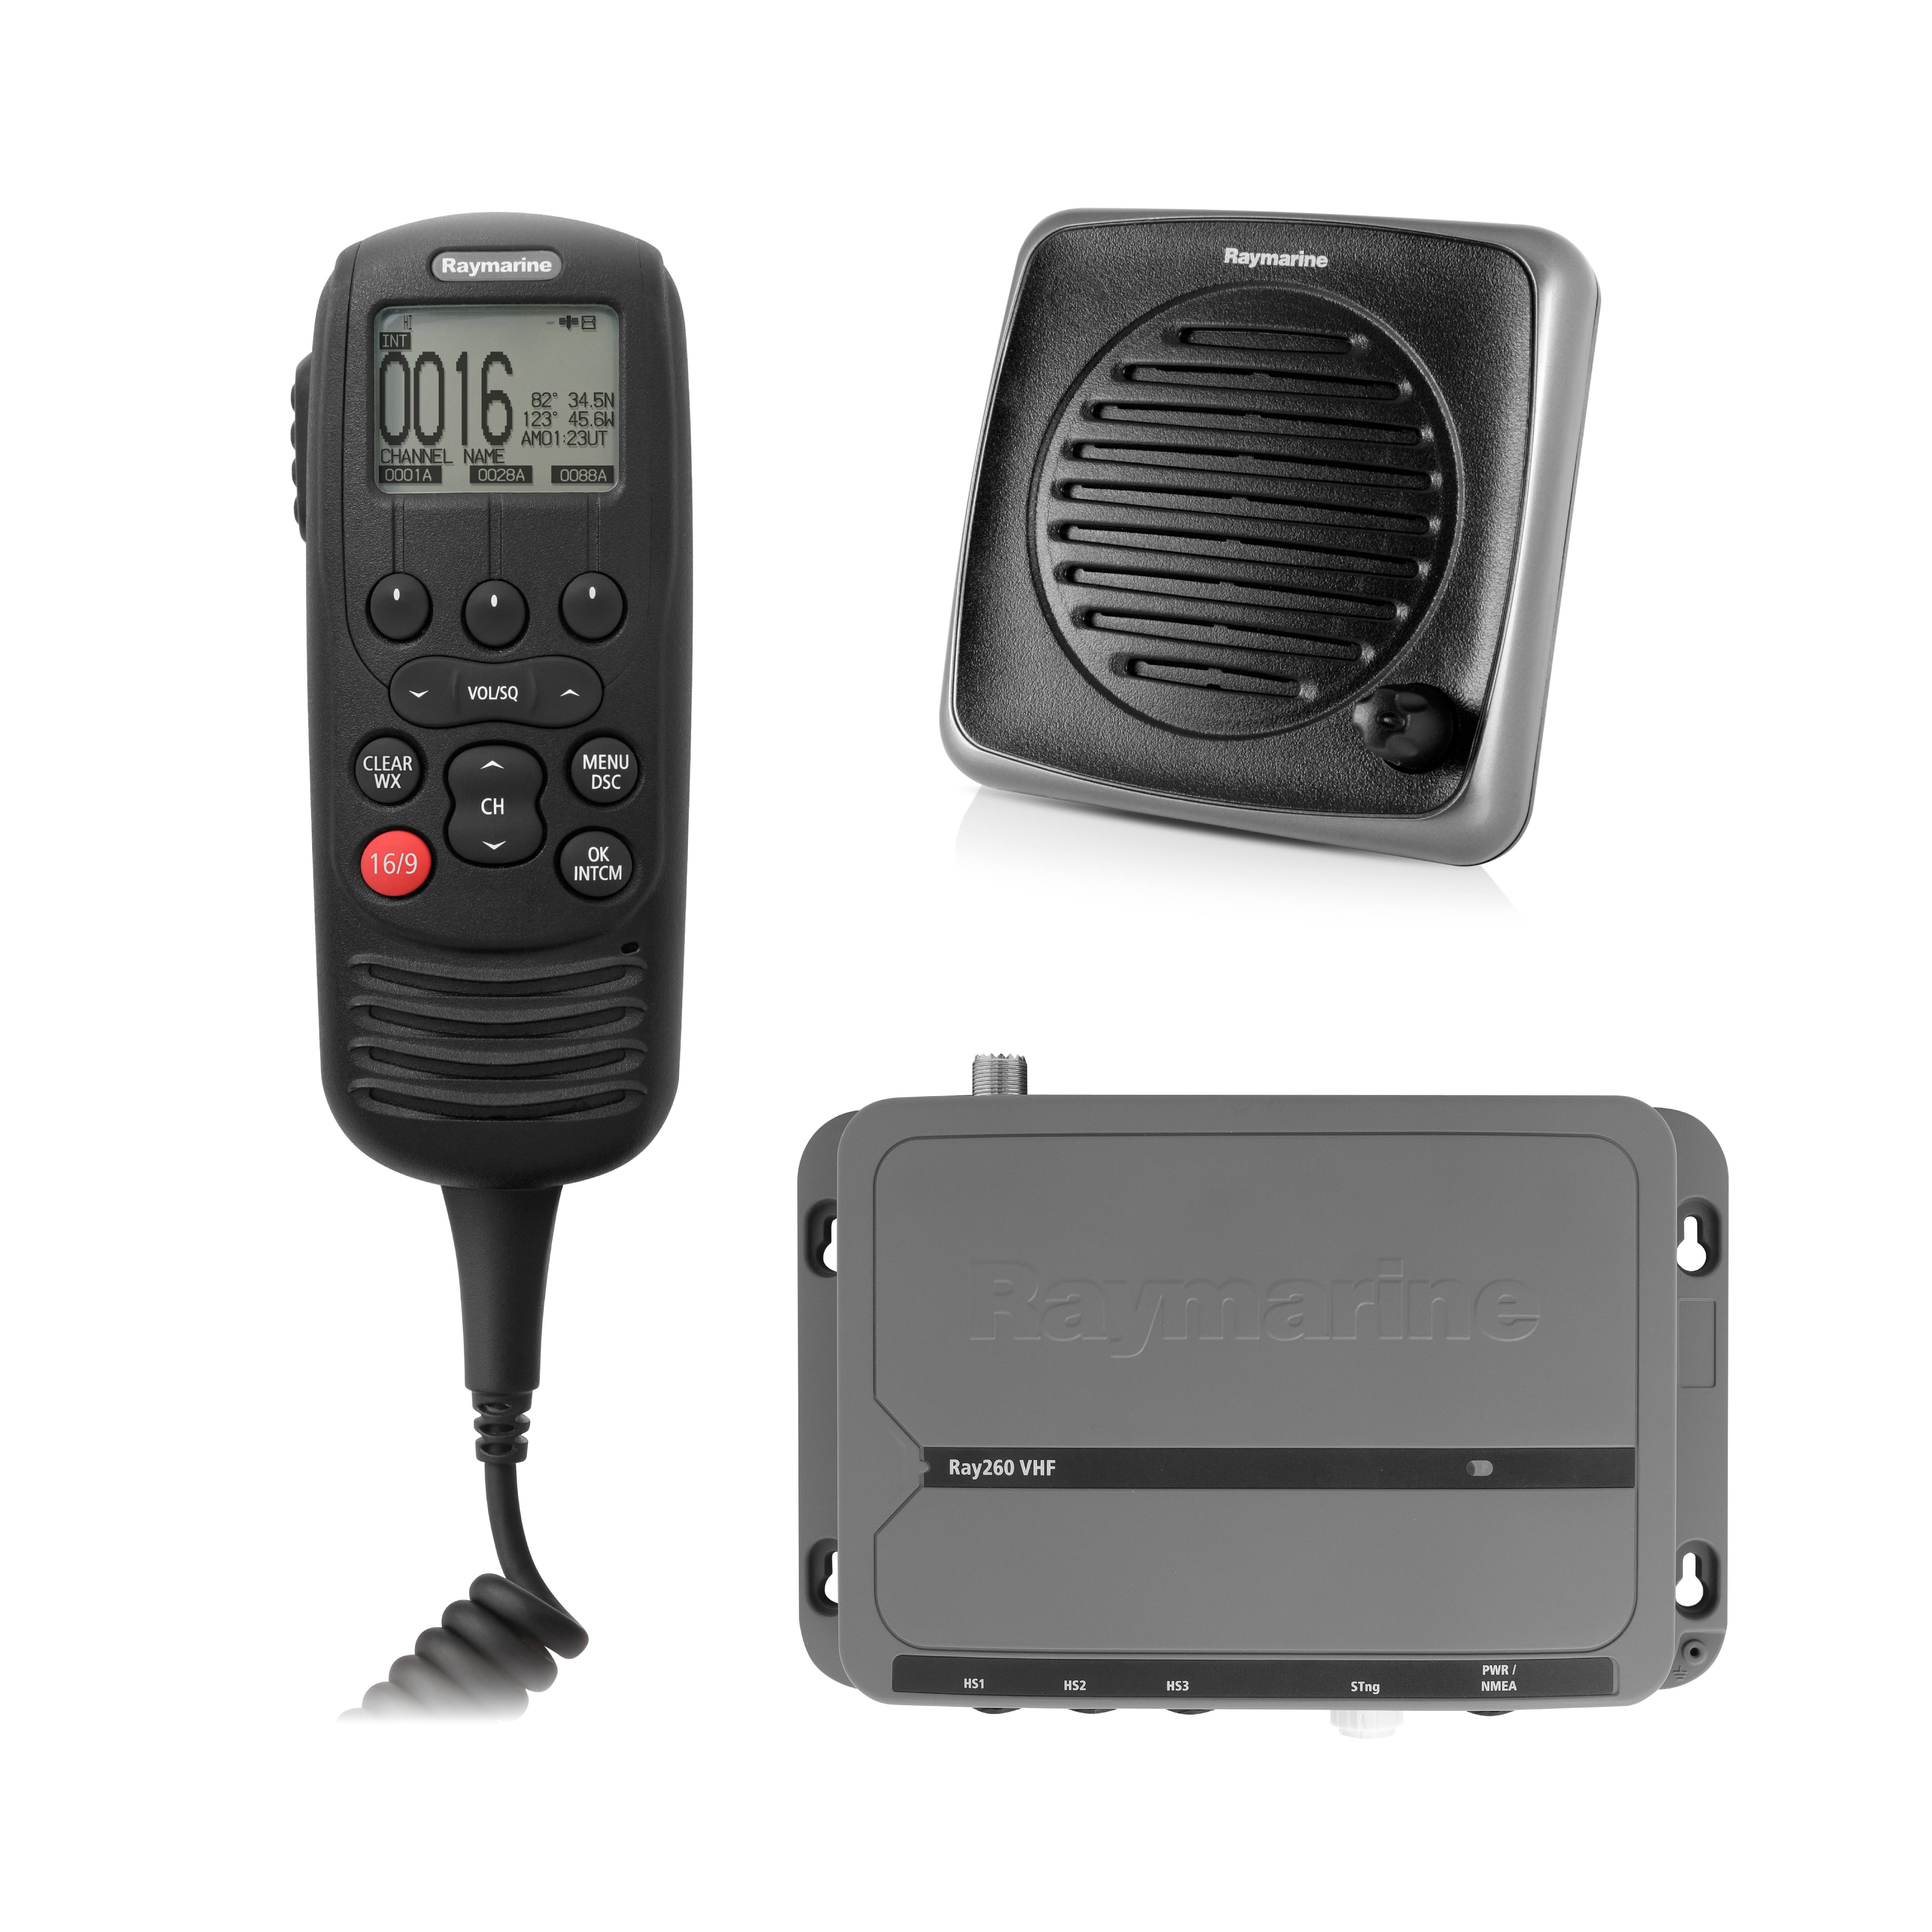 raymarine-ray260-vhf-radio-and-transceiver-eu-with-active-speaker